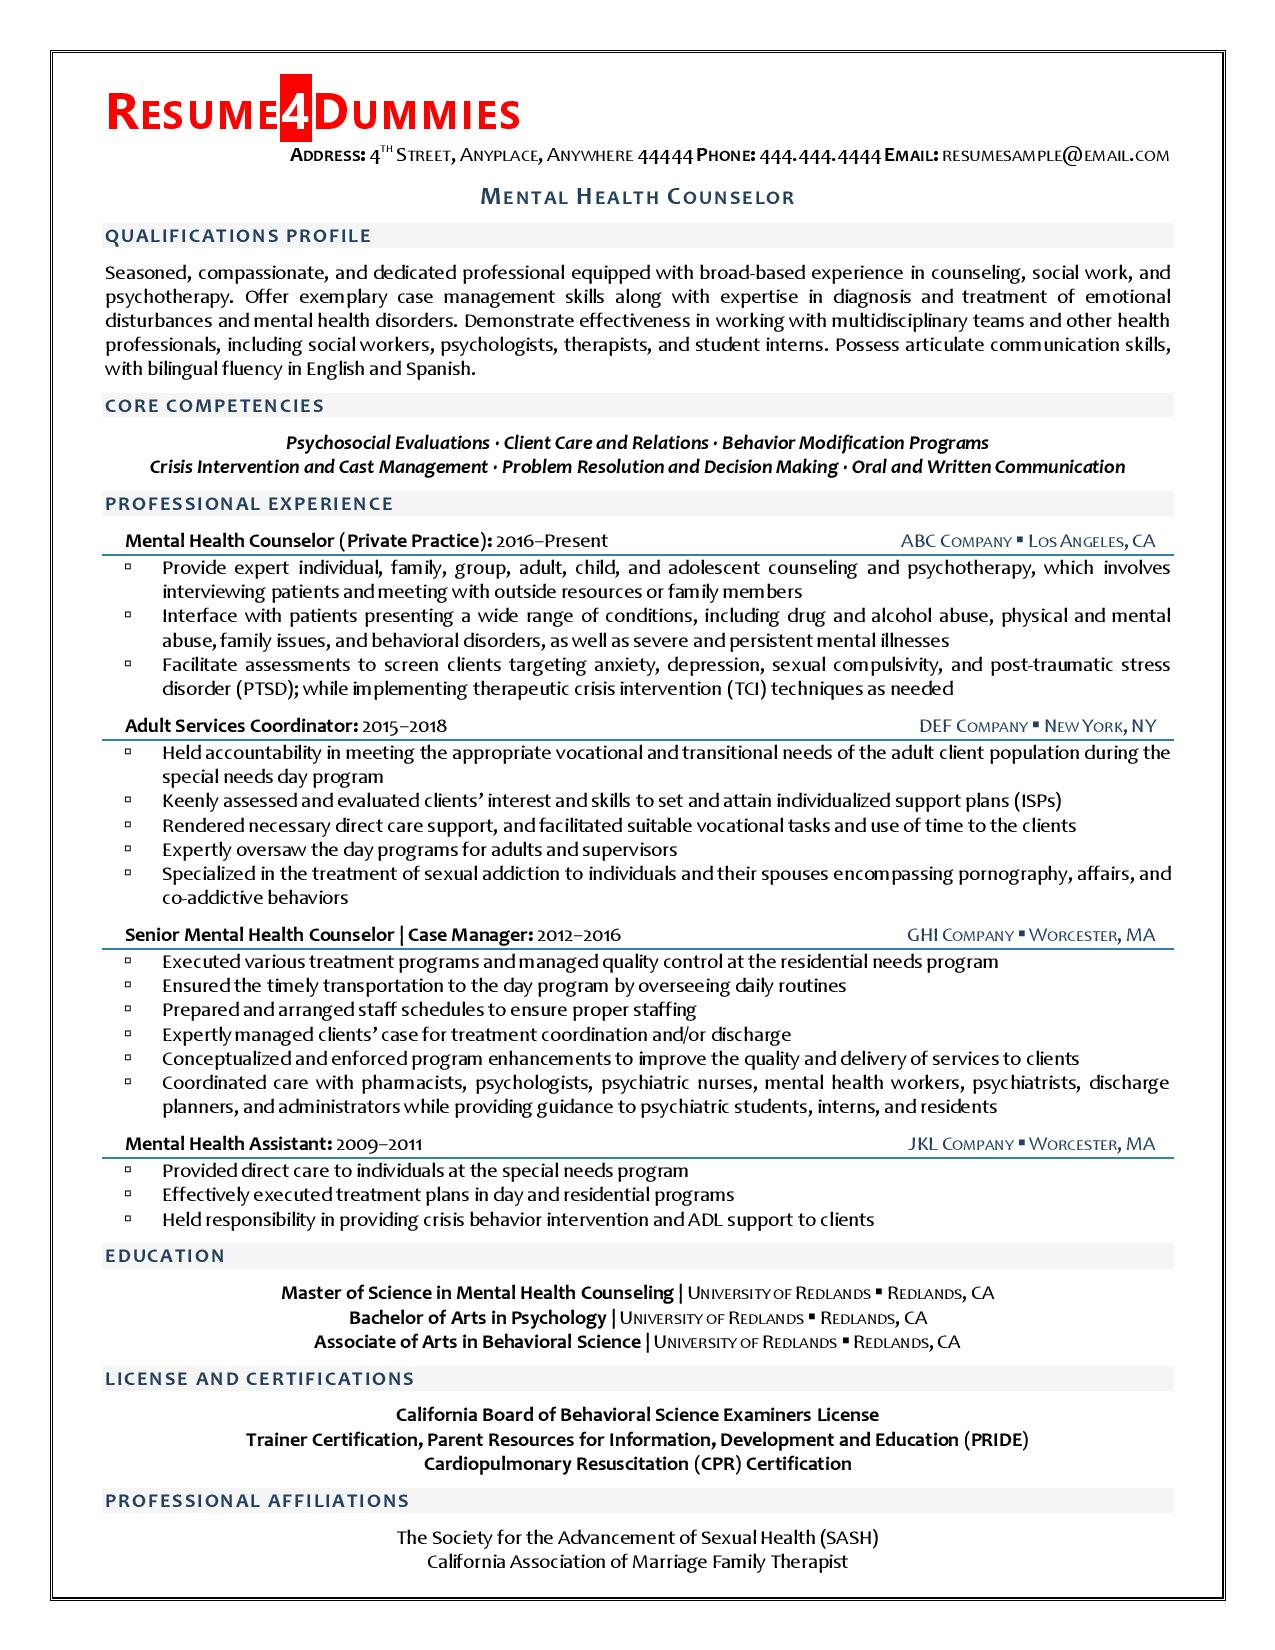 mental health counselor resume example resume4dummies substance abuse templates creative Resume Substance Abuse Counselor Resume Templates